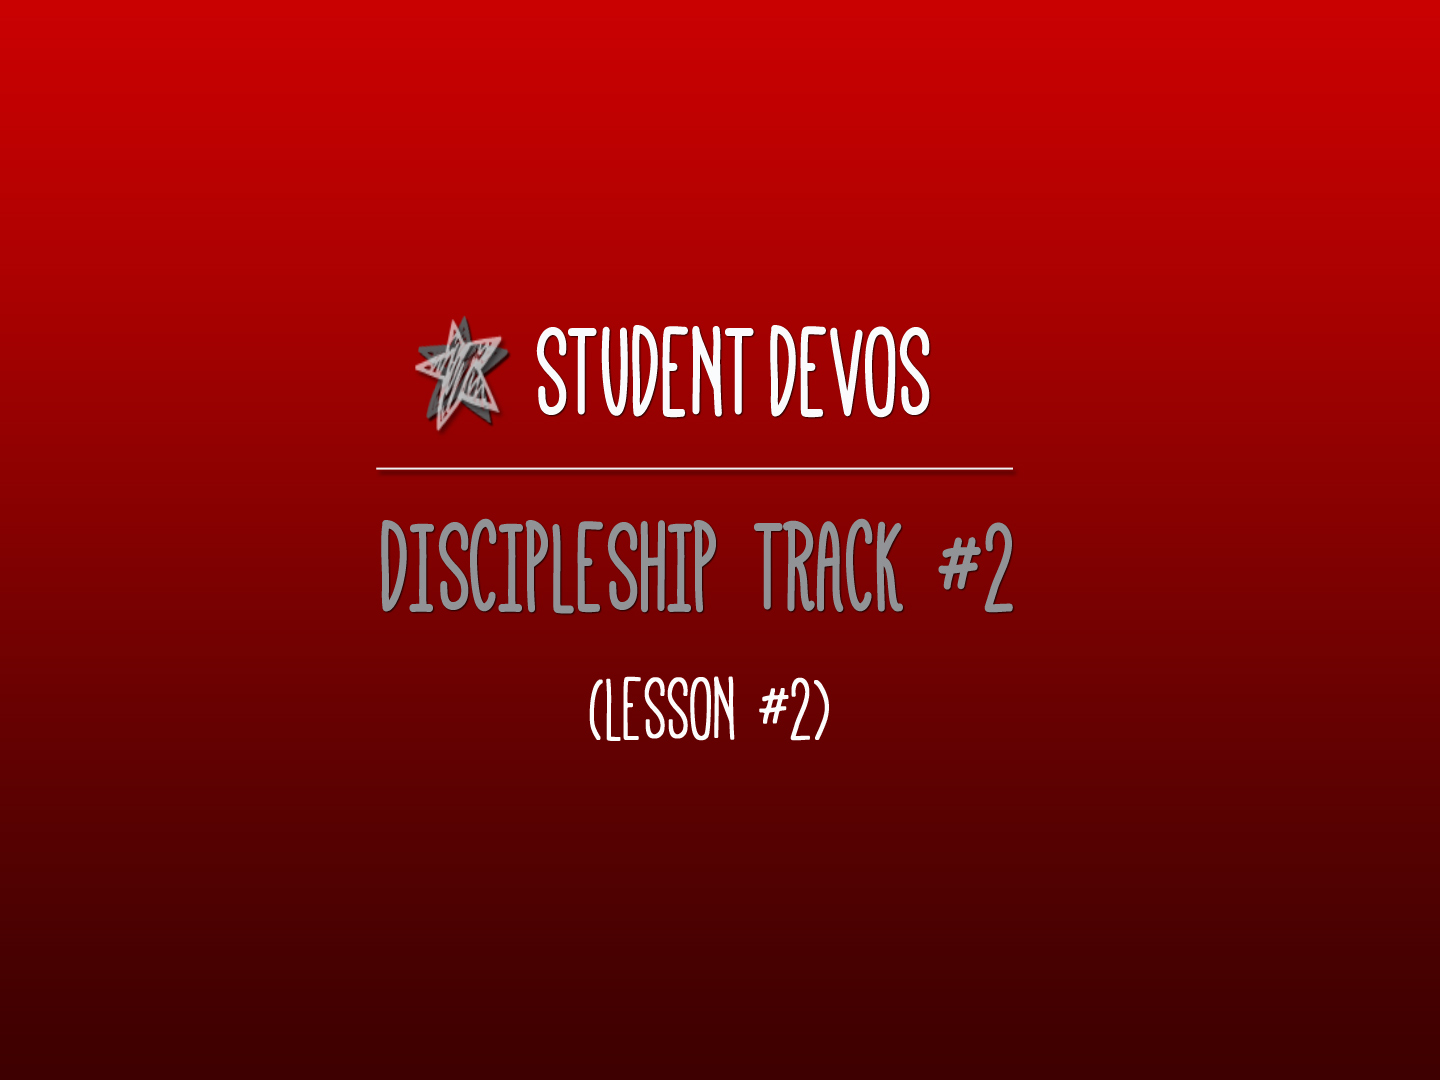 Youth Discipleship Lesson - Love of God